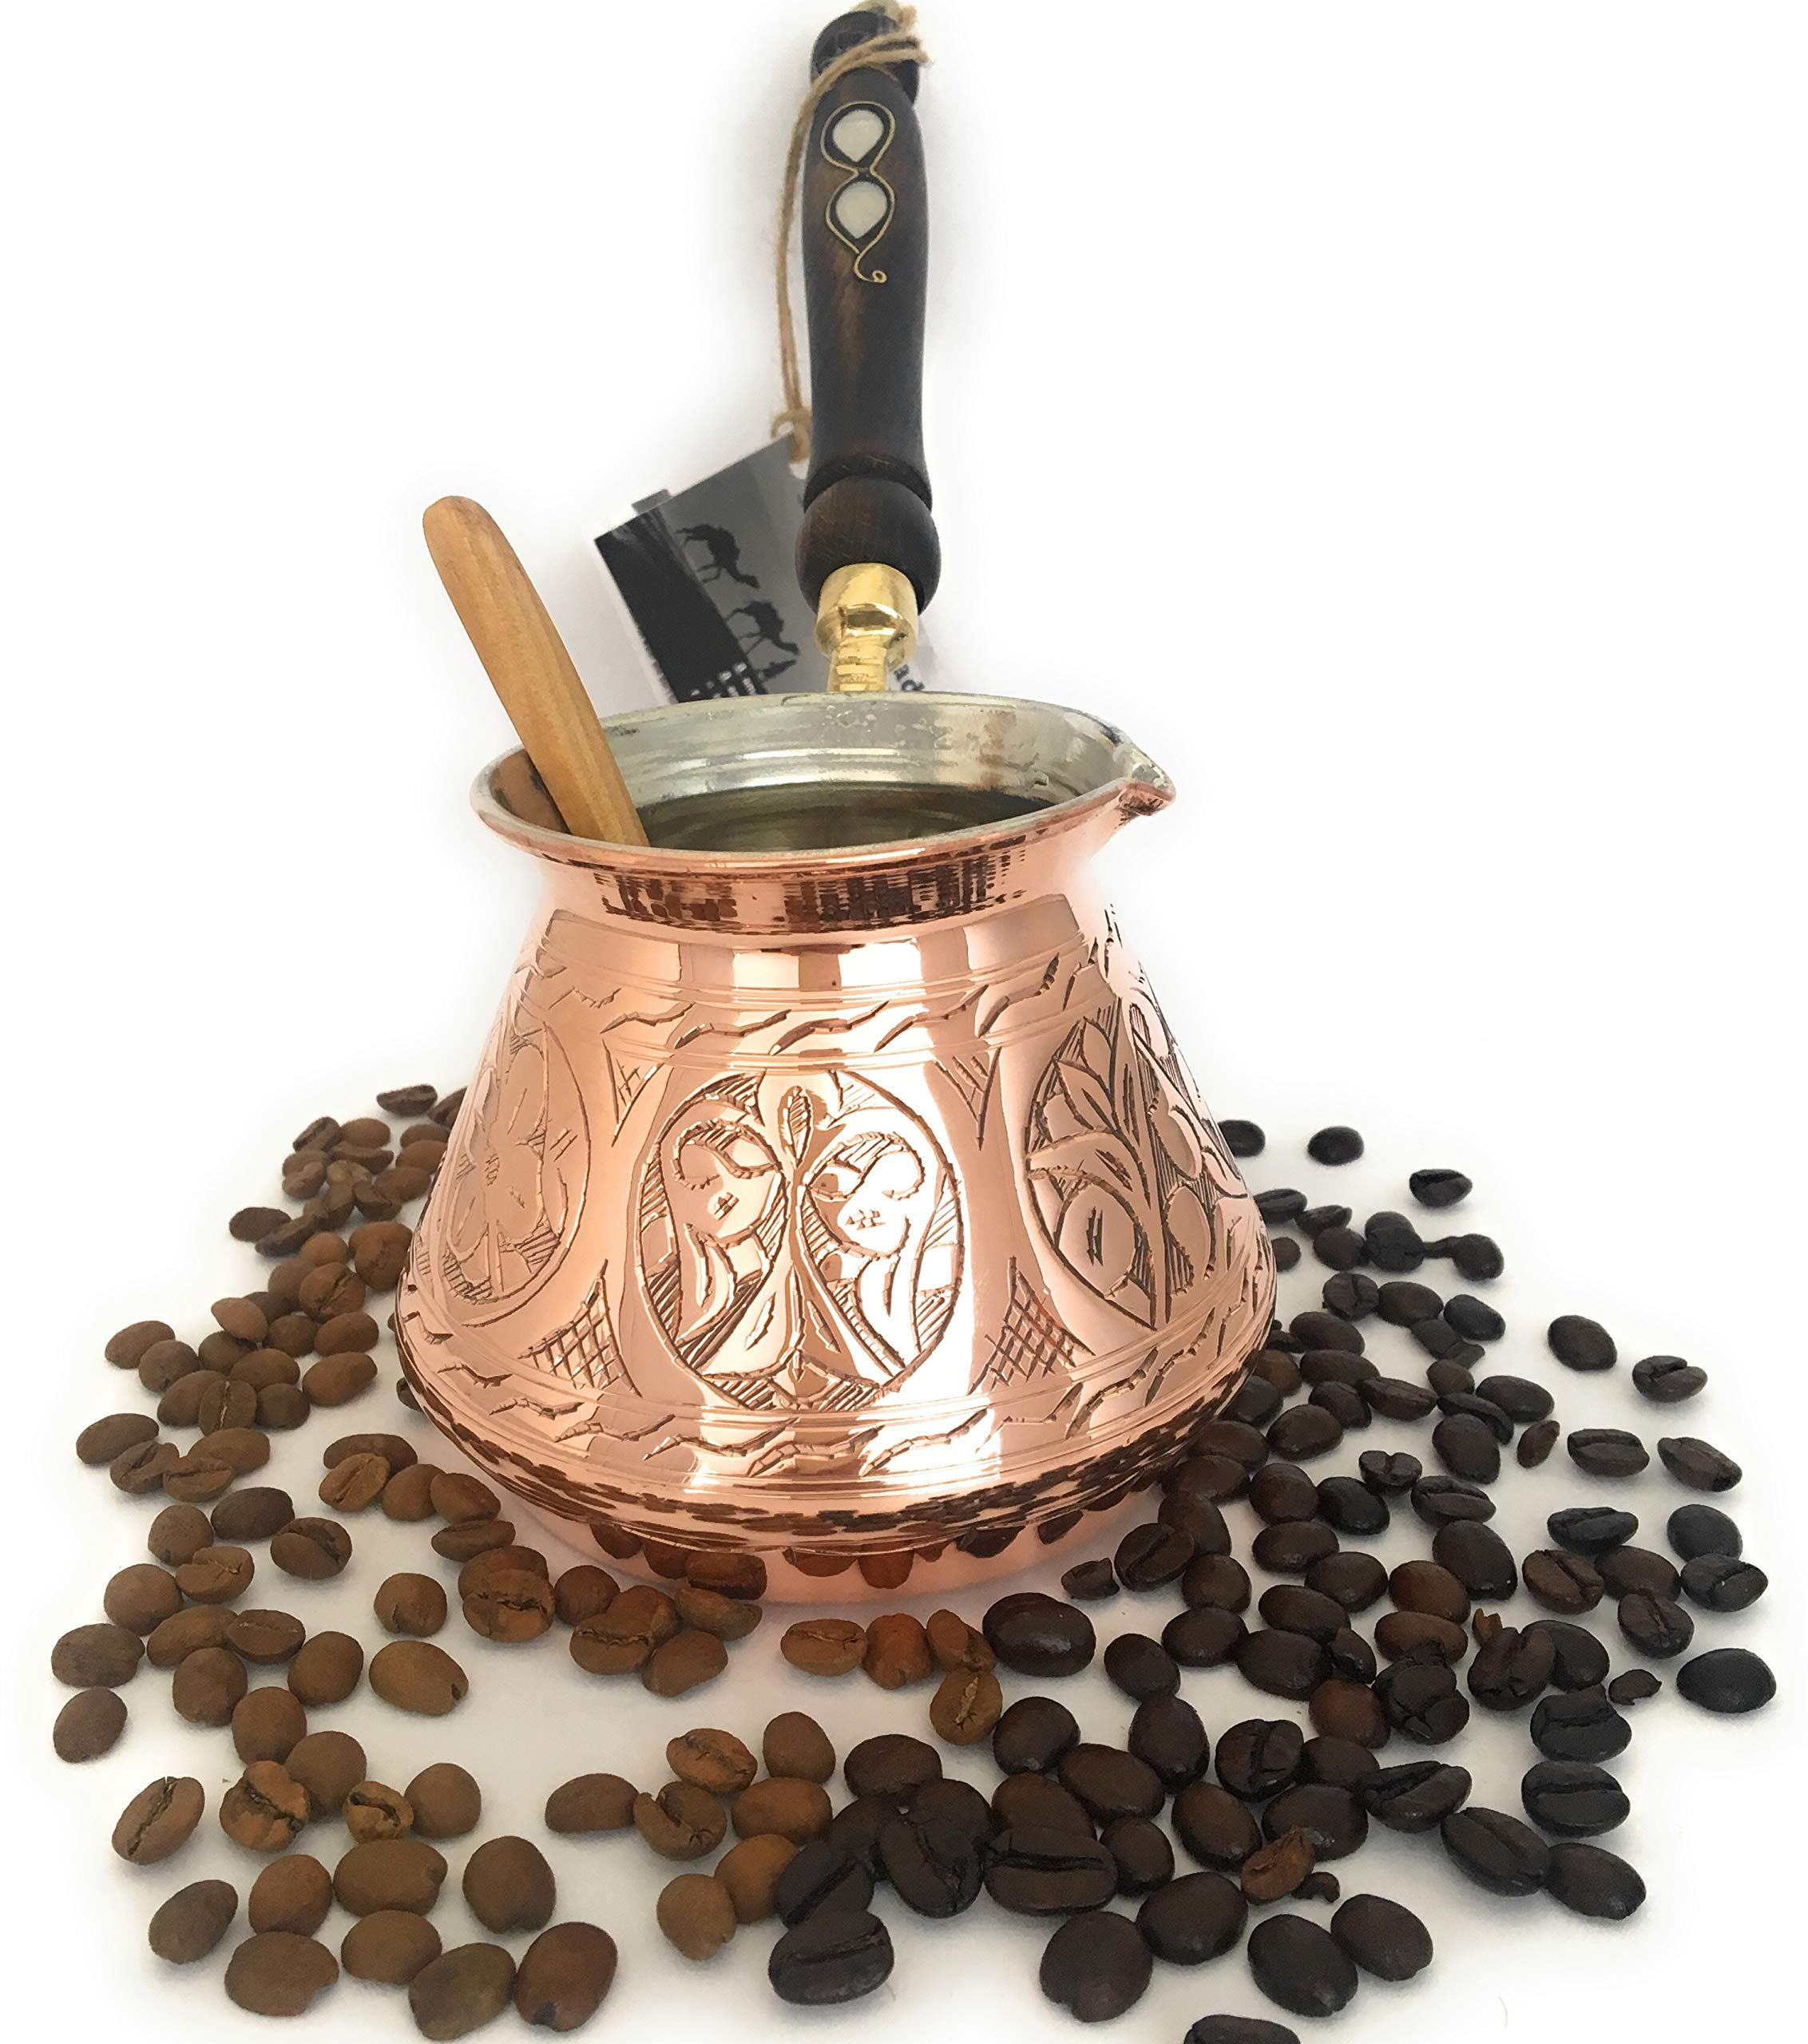 The Silk Road Trade - ACI Series (Large) - Thickest Solid Hammered and Engraved Copper Turkish Greek Arabic Coffee Pot / Coffee Maker Cezve Ibrik Briki with Wooden Handle (18 fl oz) by The Silk Road Trade (Image #3)